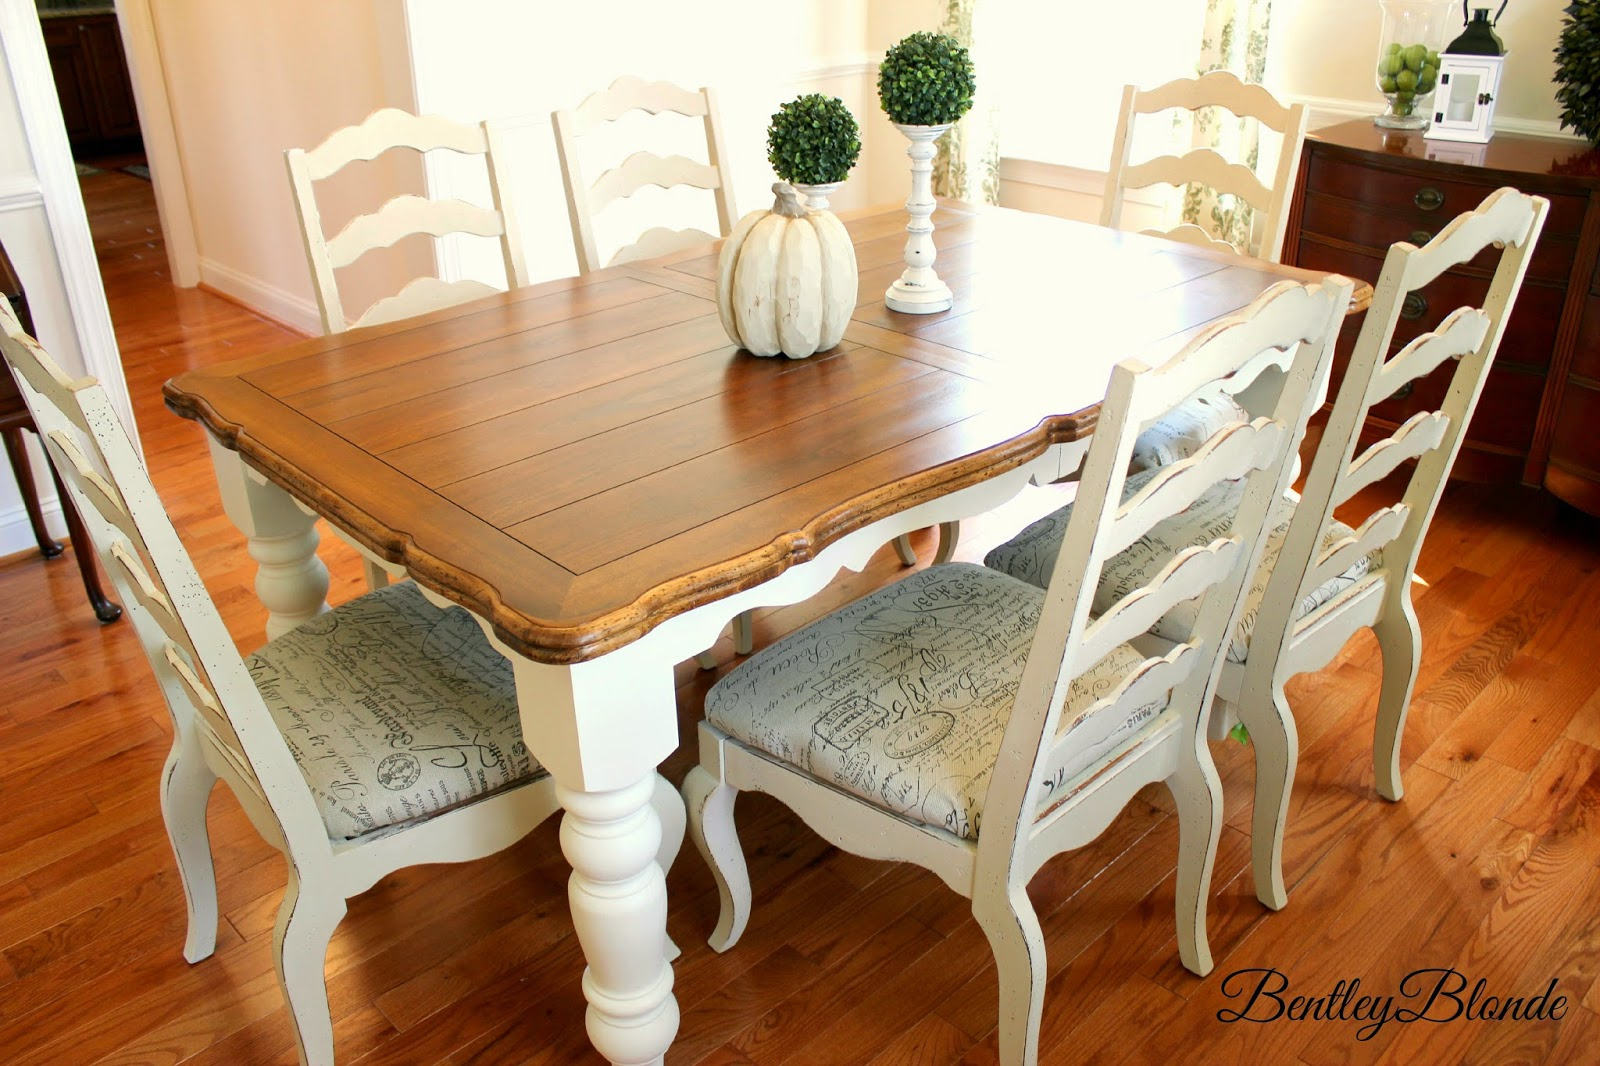 painted tables and chairs old wooden for sale bentleyblonde diy farmhouse table dining set makeover with annie sloan chalk paint